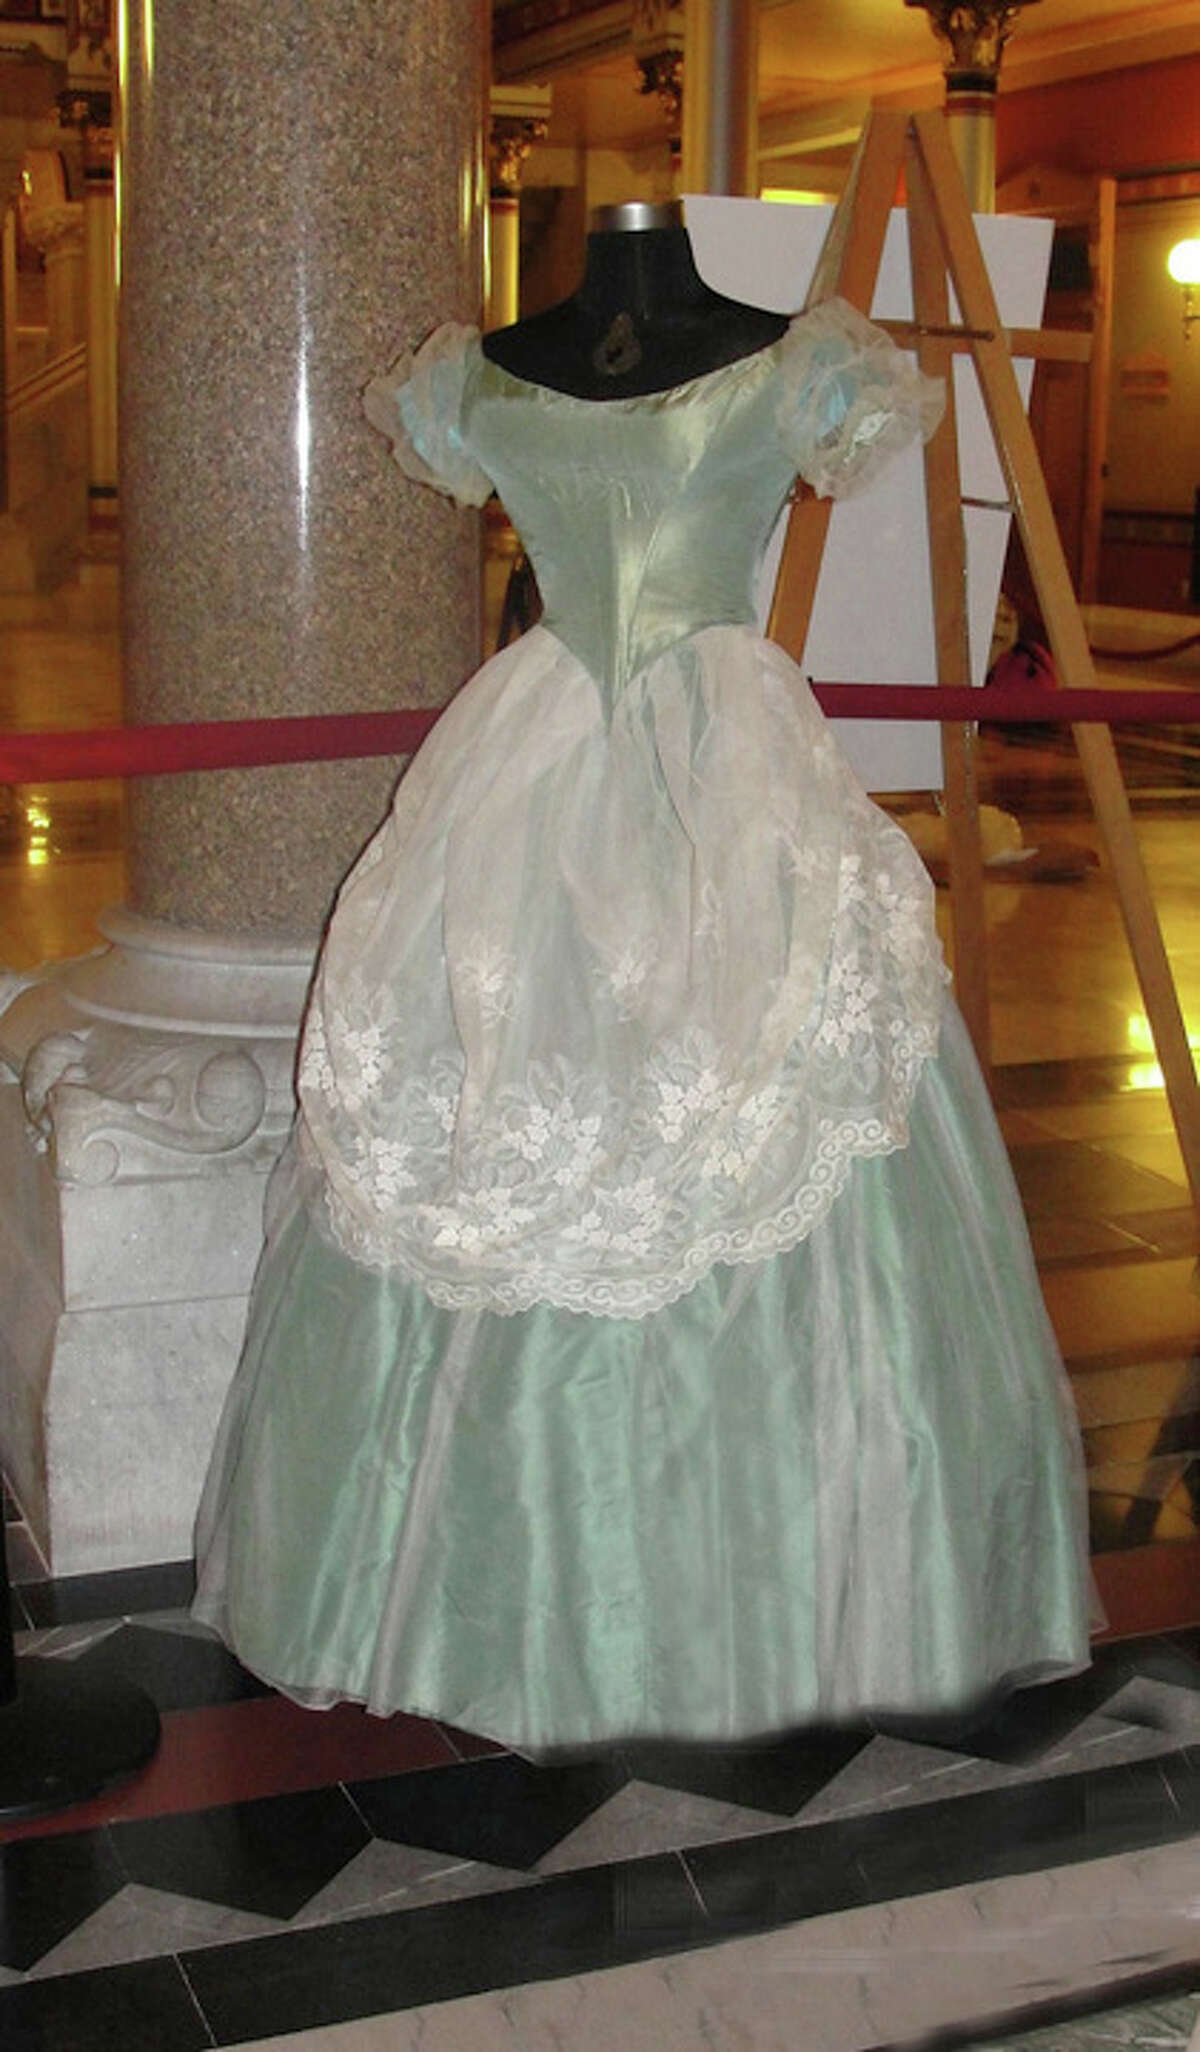 Some of the dresses from UConnís Historical Costume and Textile Collection that will be displayed in the Capitolís Hall of Flags into the new year.